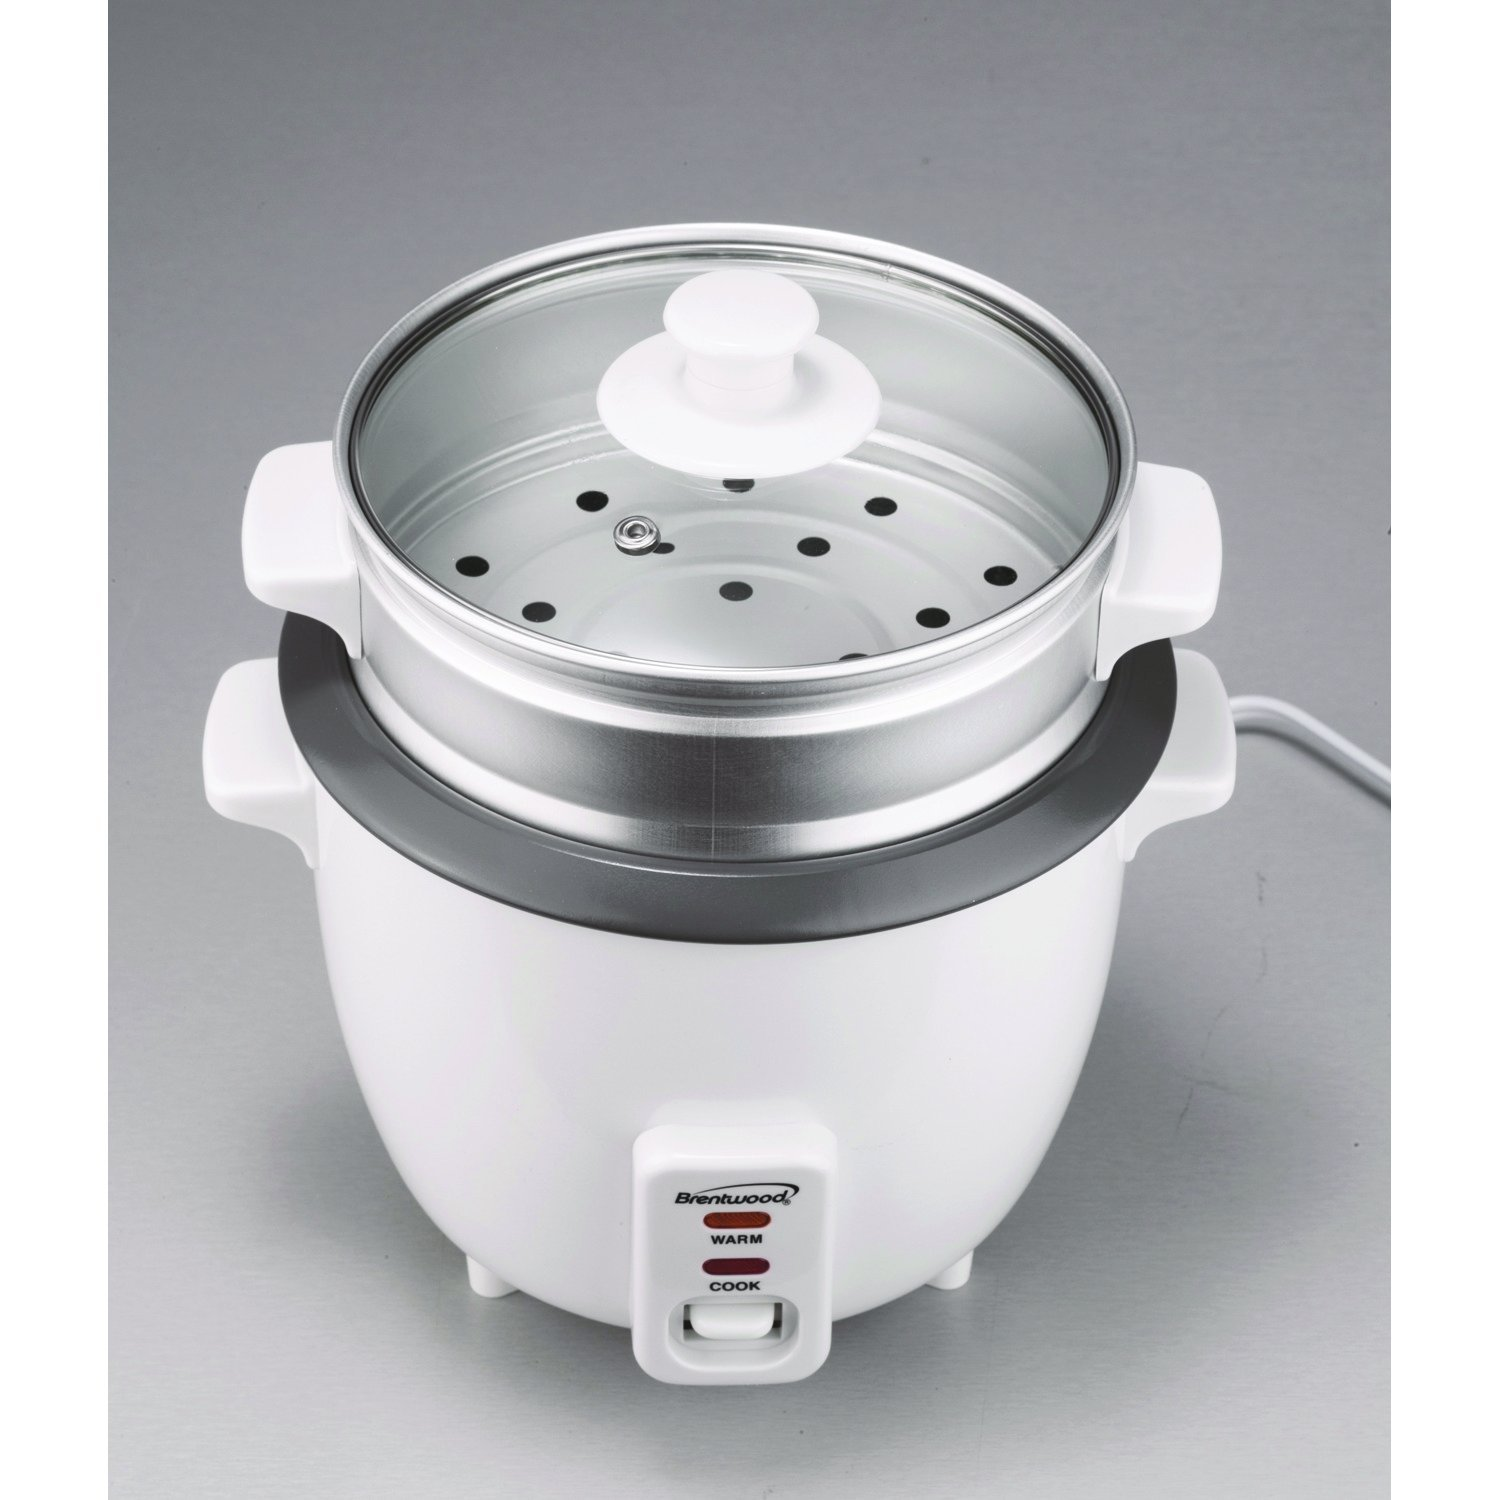 5 Cups Non-Stick Rice Cooker with Food Steamer